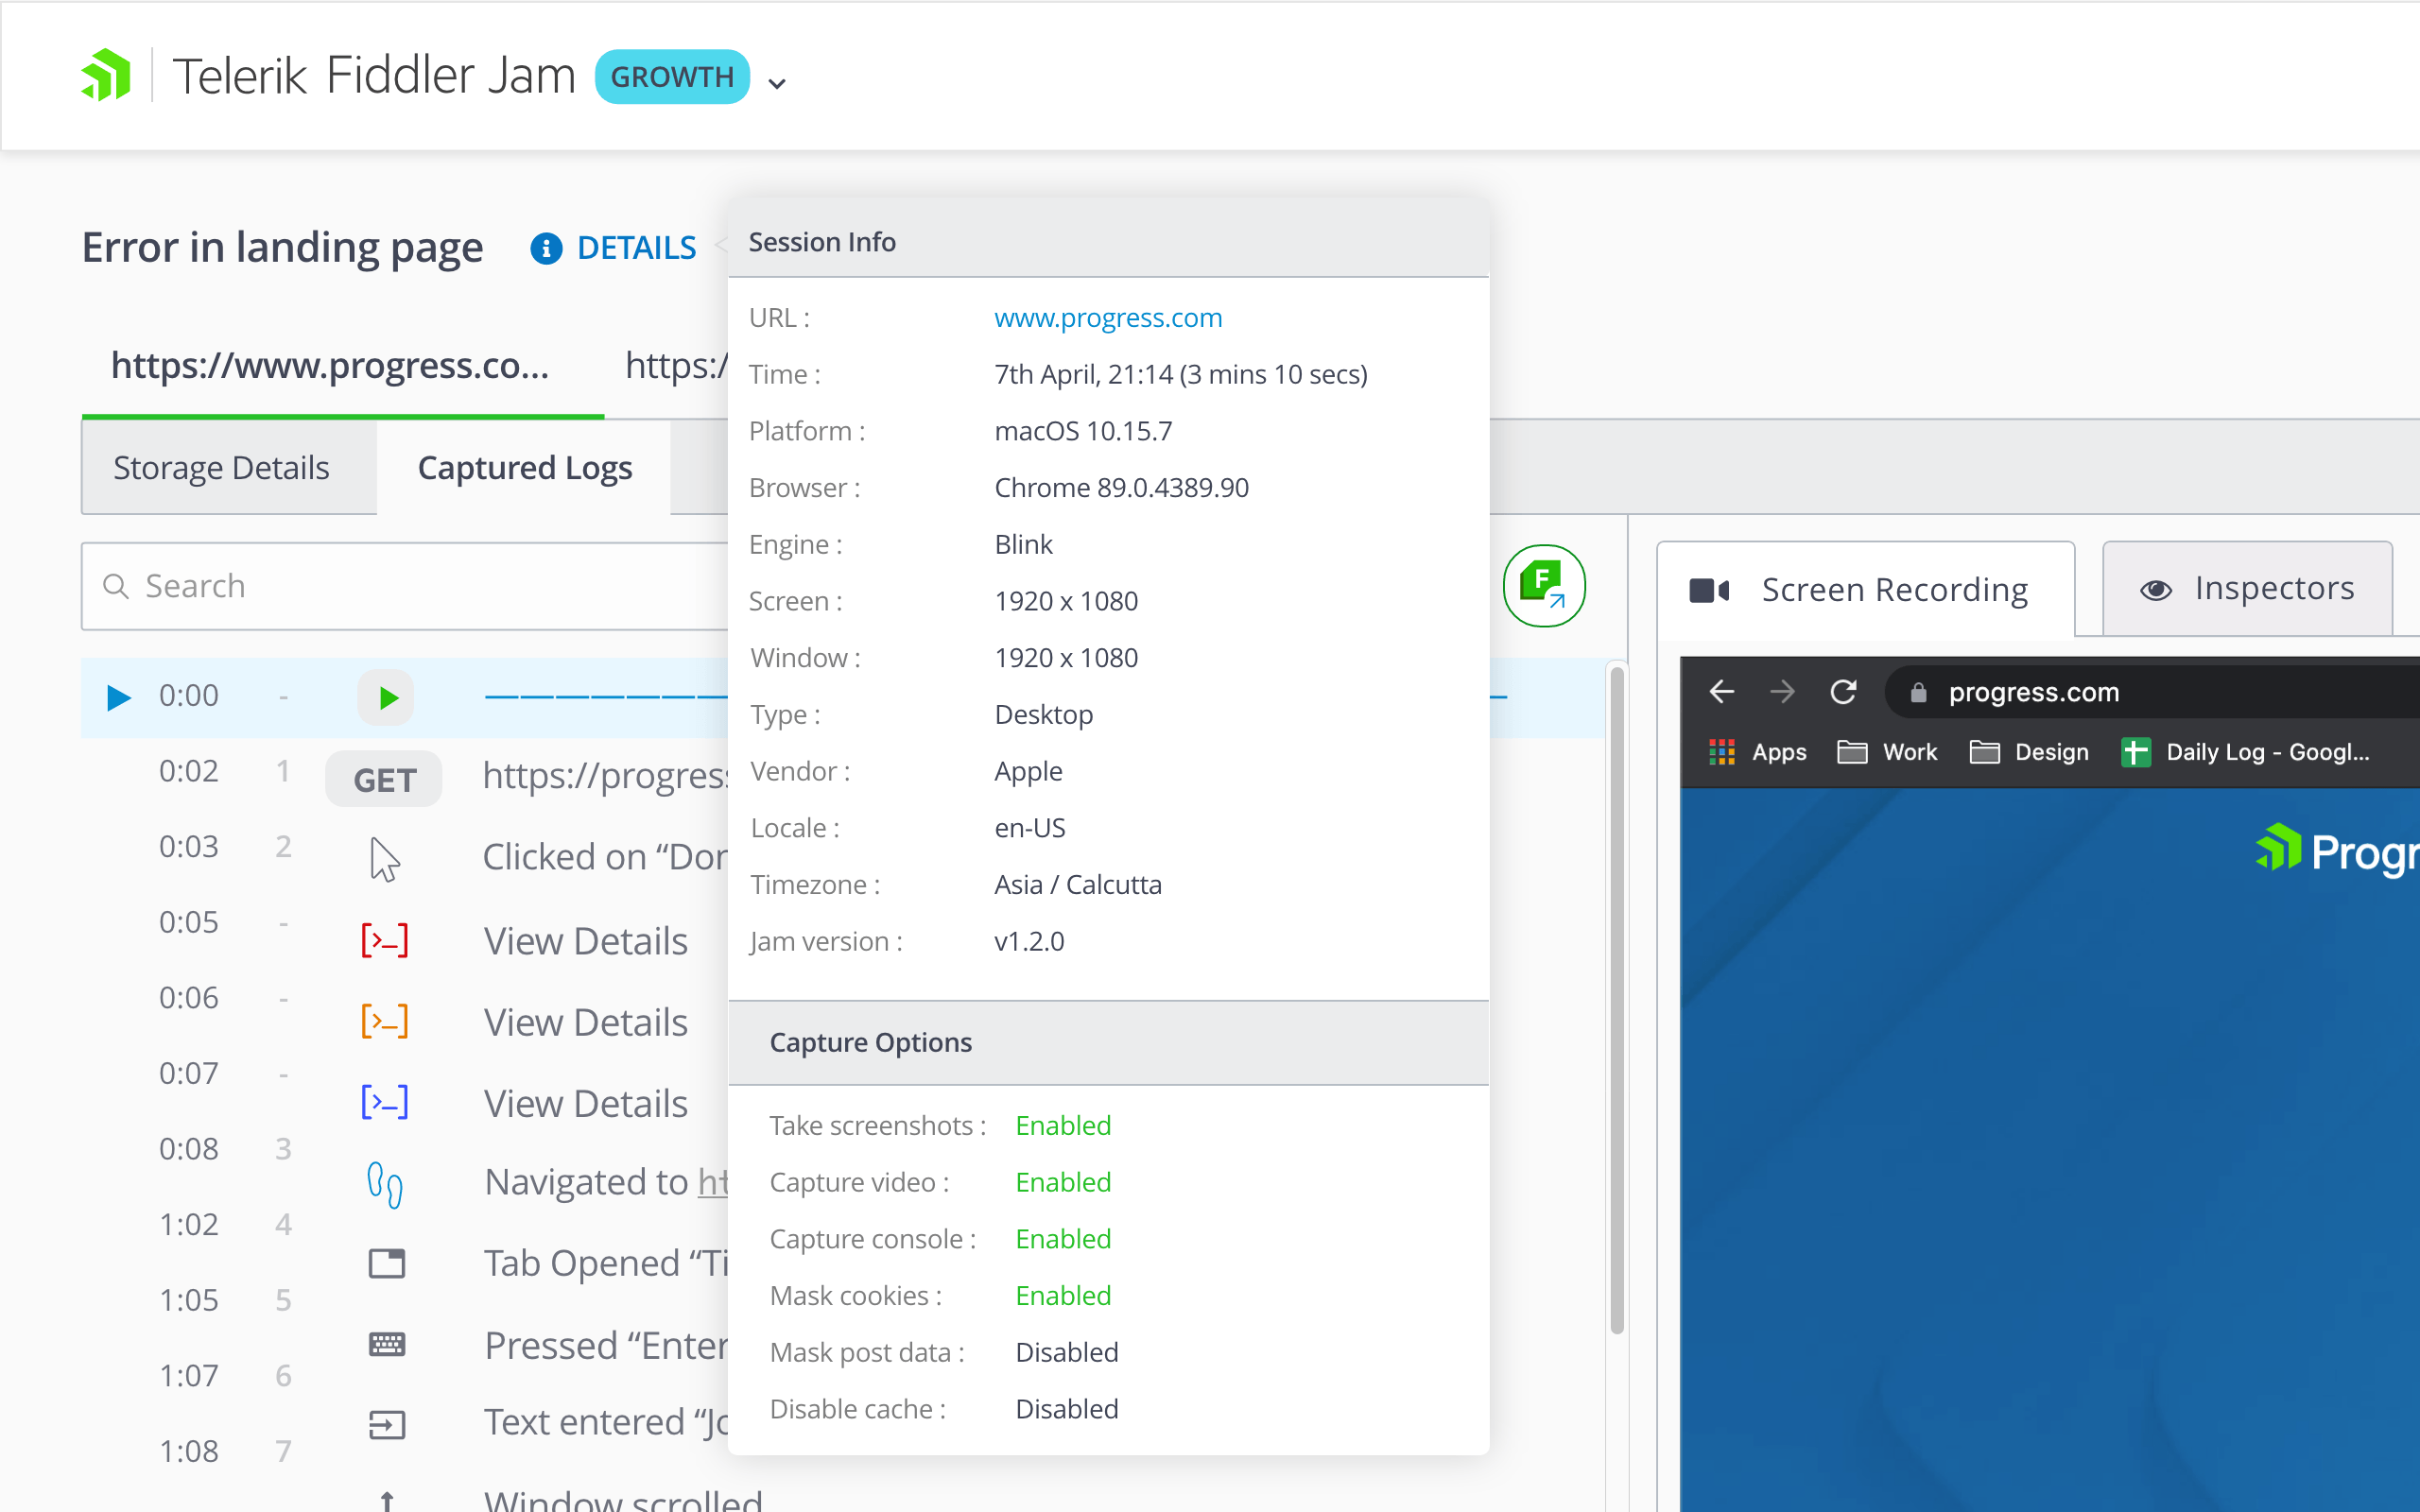 Fiddler Jam - Capture Options shows whether settings were Enabled or Disabled